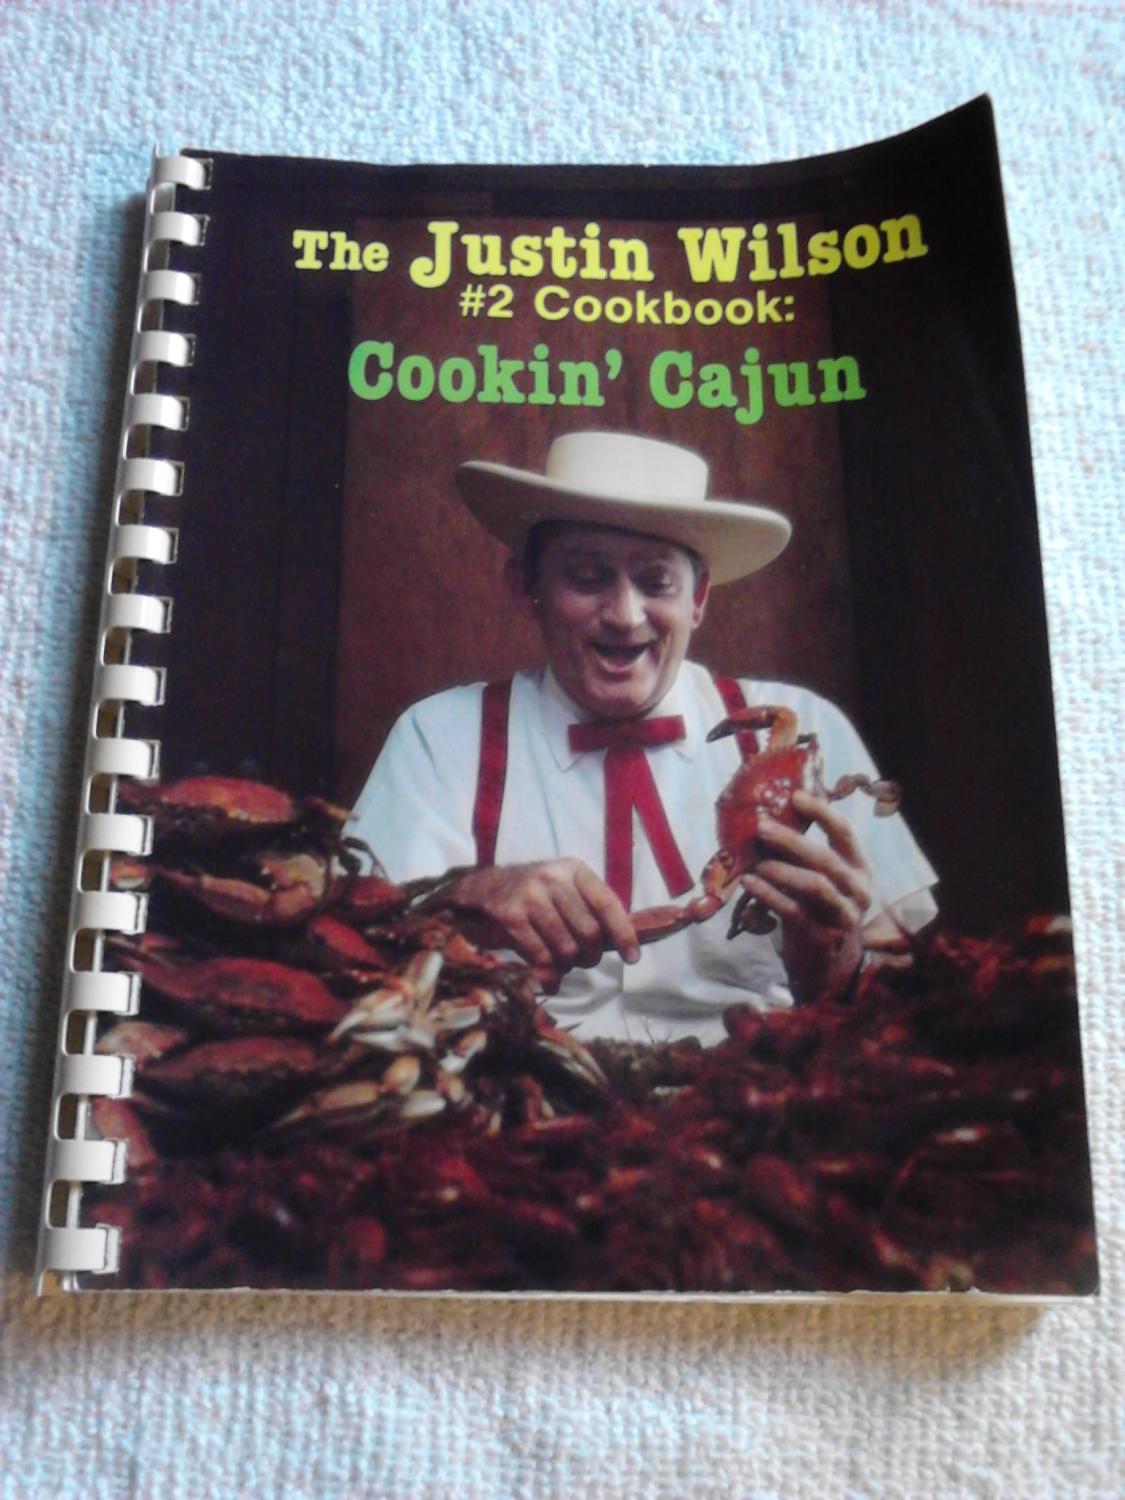 Cook book with cackling Cajun man with crustaceans.